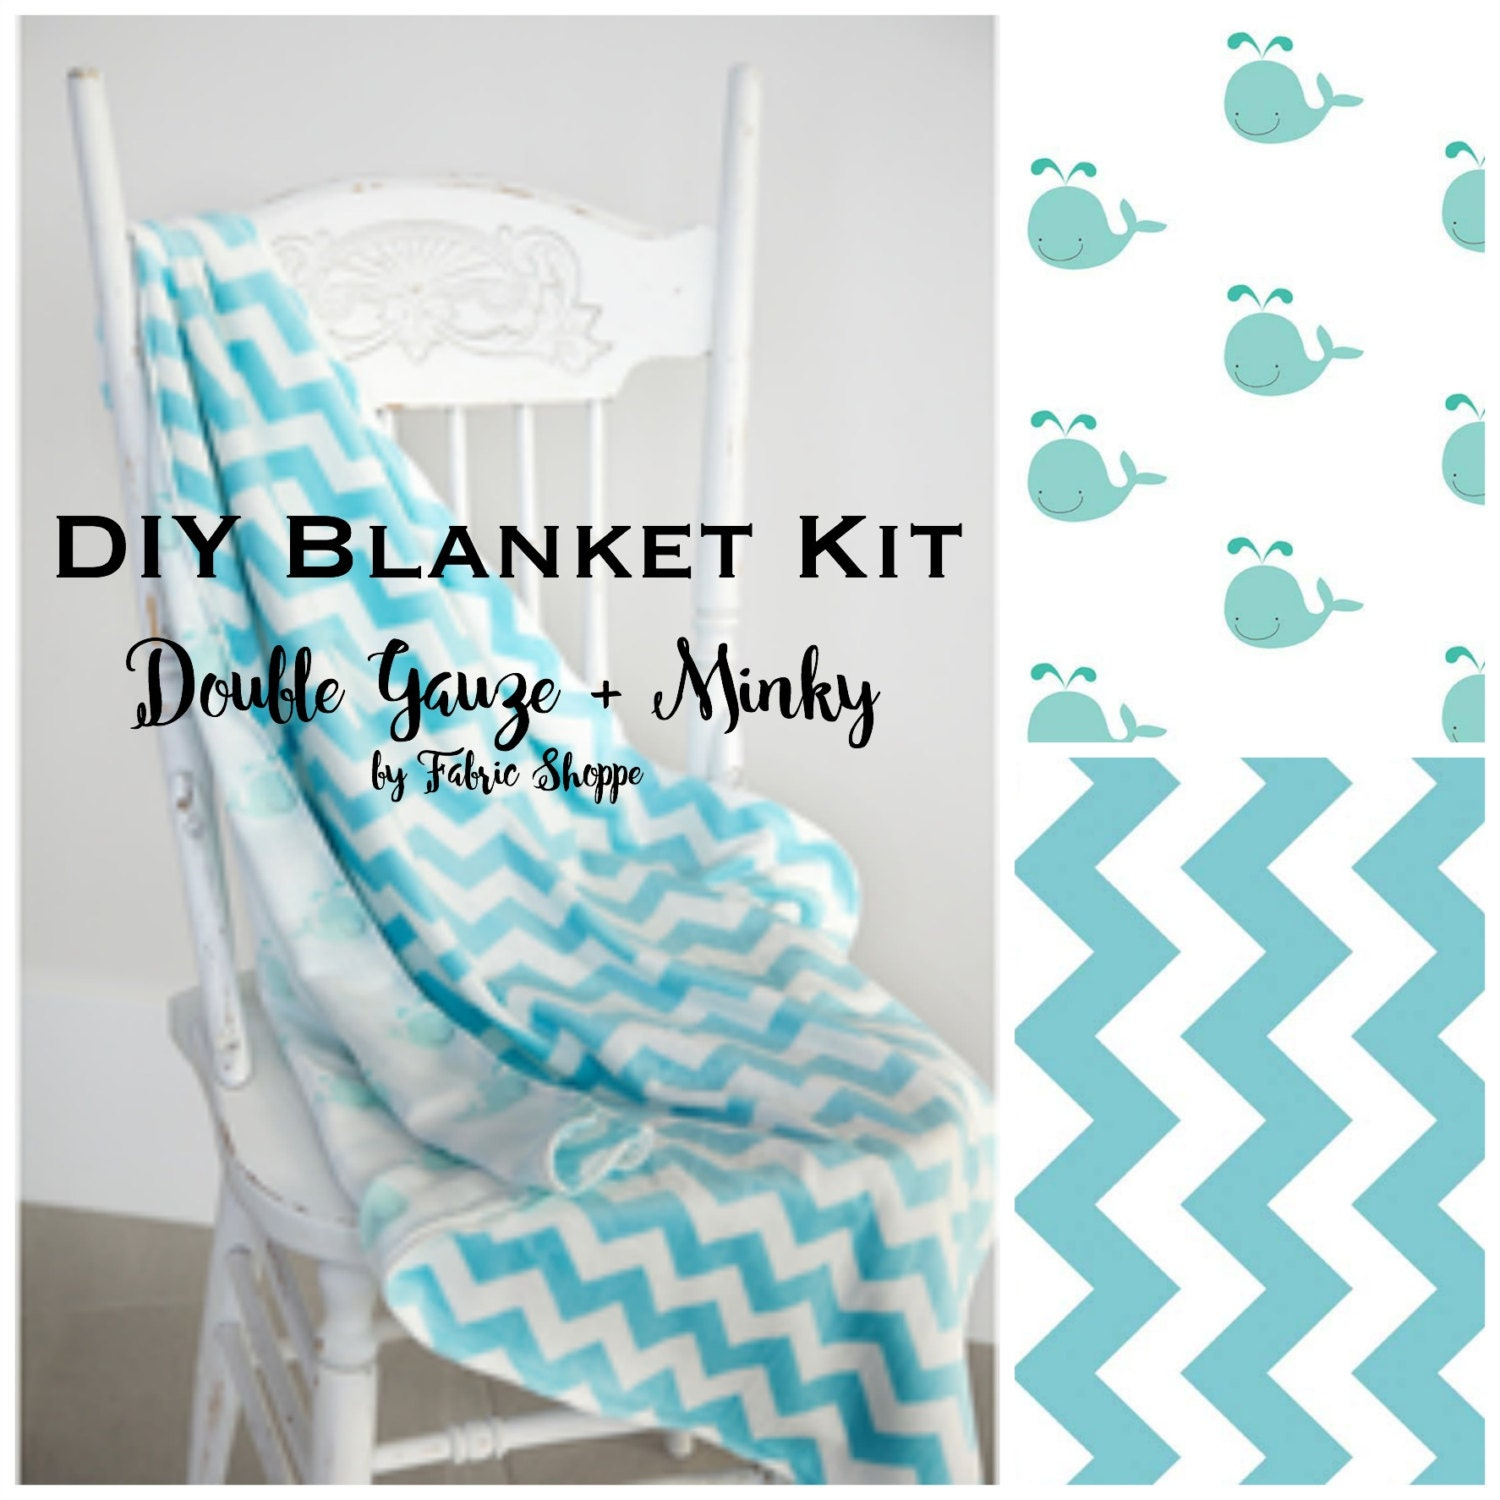 Diy quilt kit baby boy quilt baby blanket kit double gauze diy quilt kit baby boy quilt baby blanket kit double gauze fabric whale fabric chevron baby fabric baby gift make it yourself solutioingenieria Images